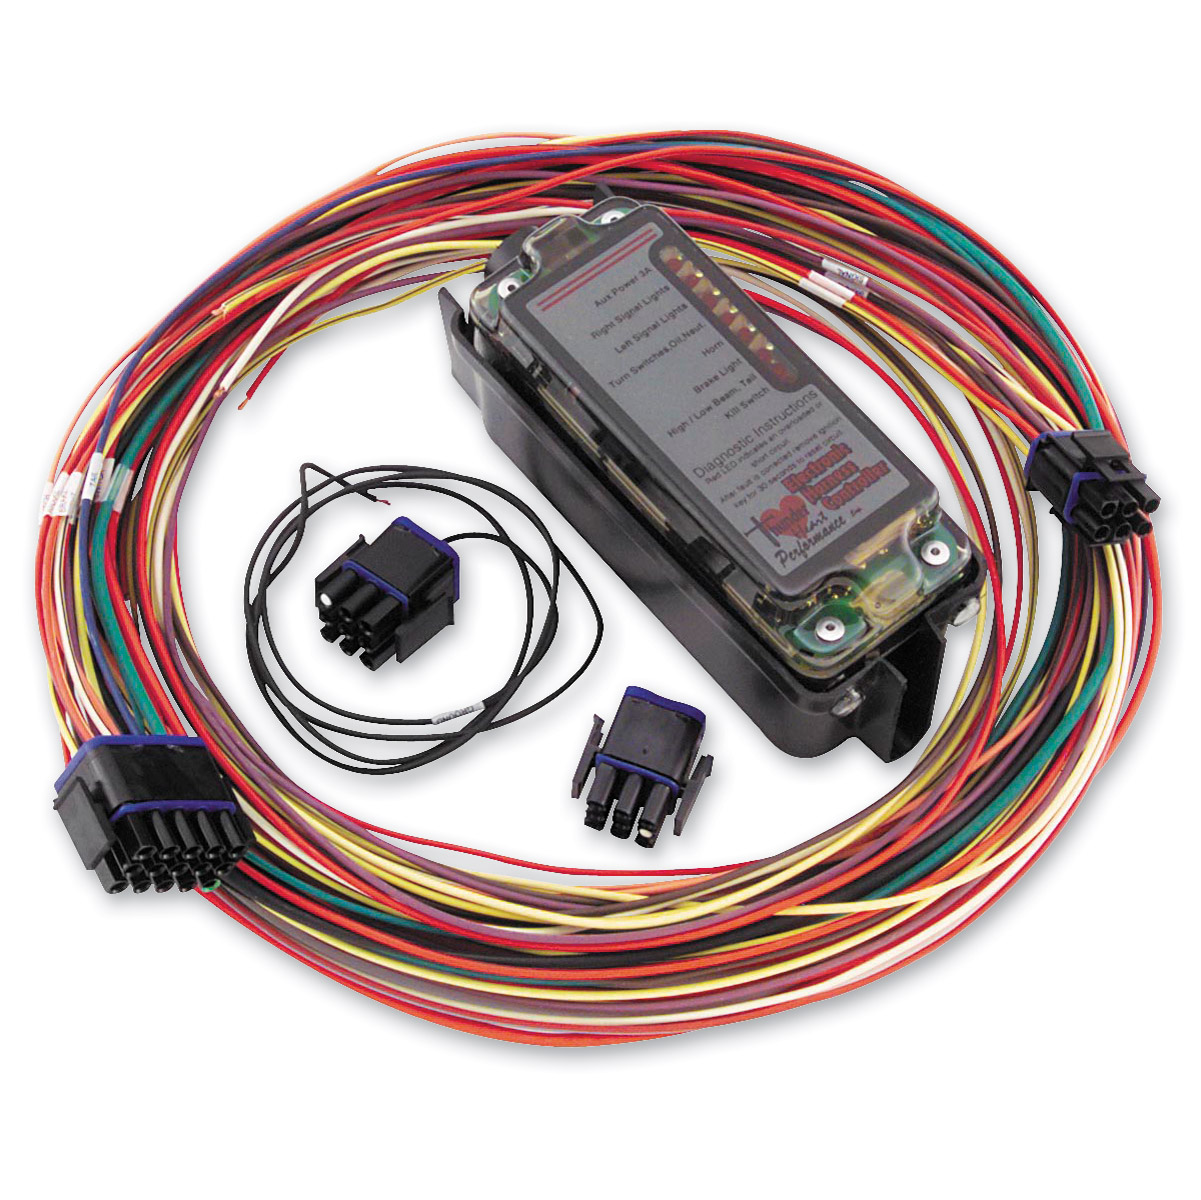 hight resolution of thunder heart performance complete electronic harness controller harley davidson extended wiring harness harley davidson wiring harness